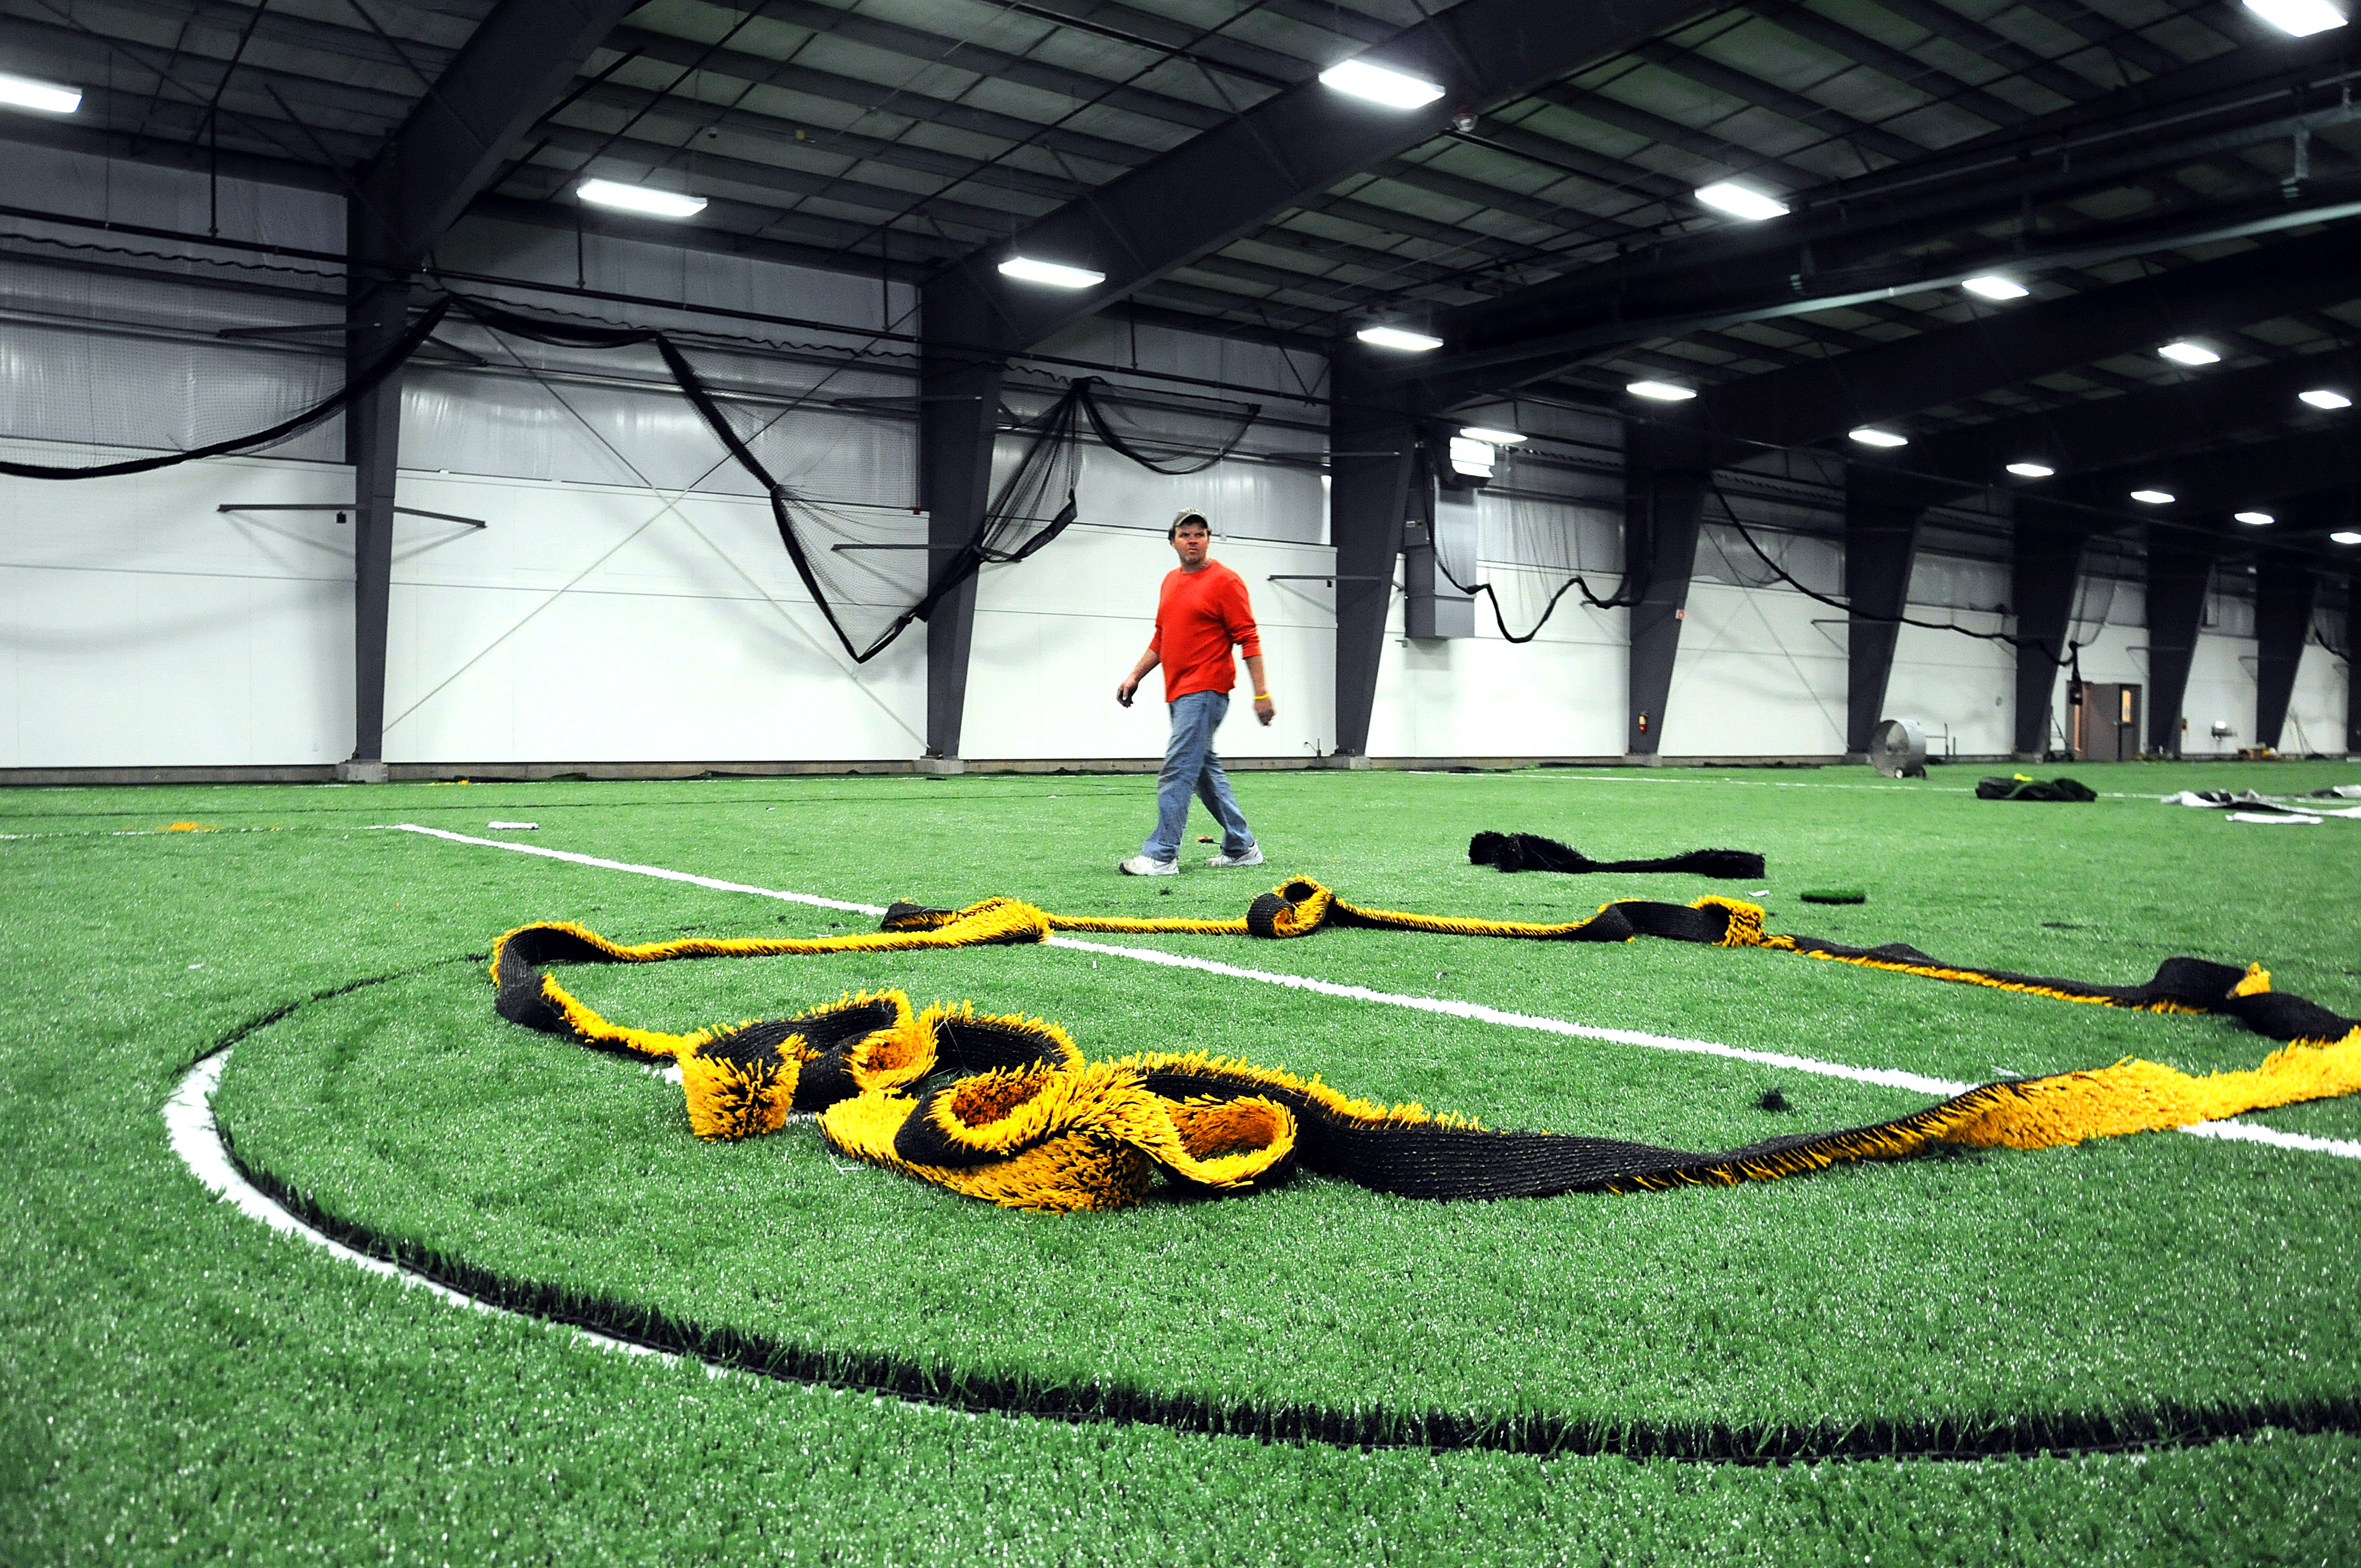 Starland opens its new athletic center - The Boston Globe